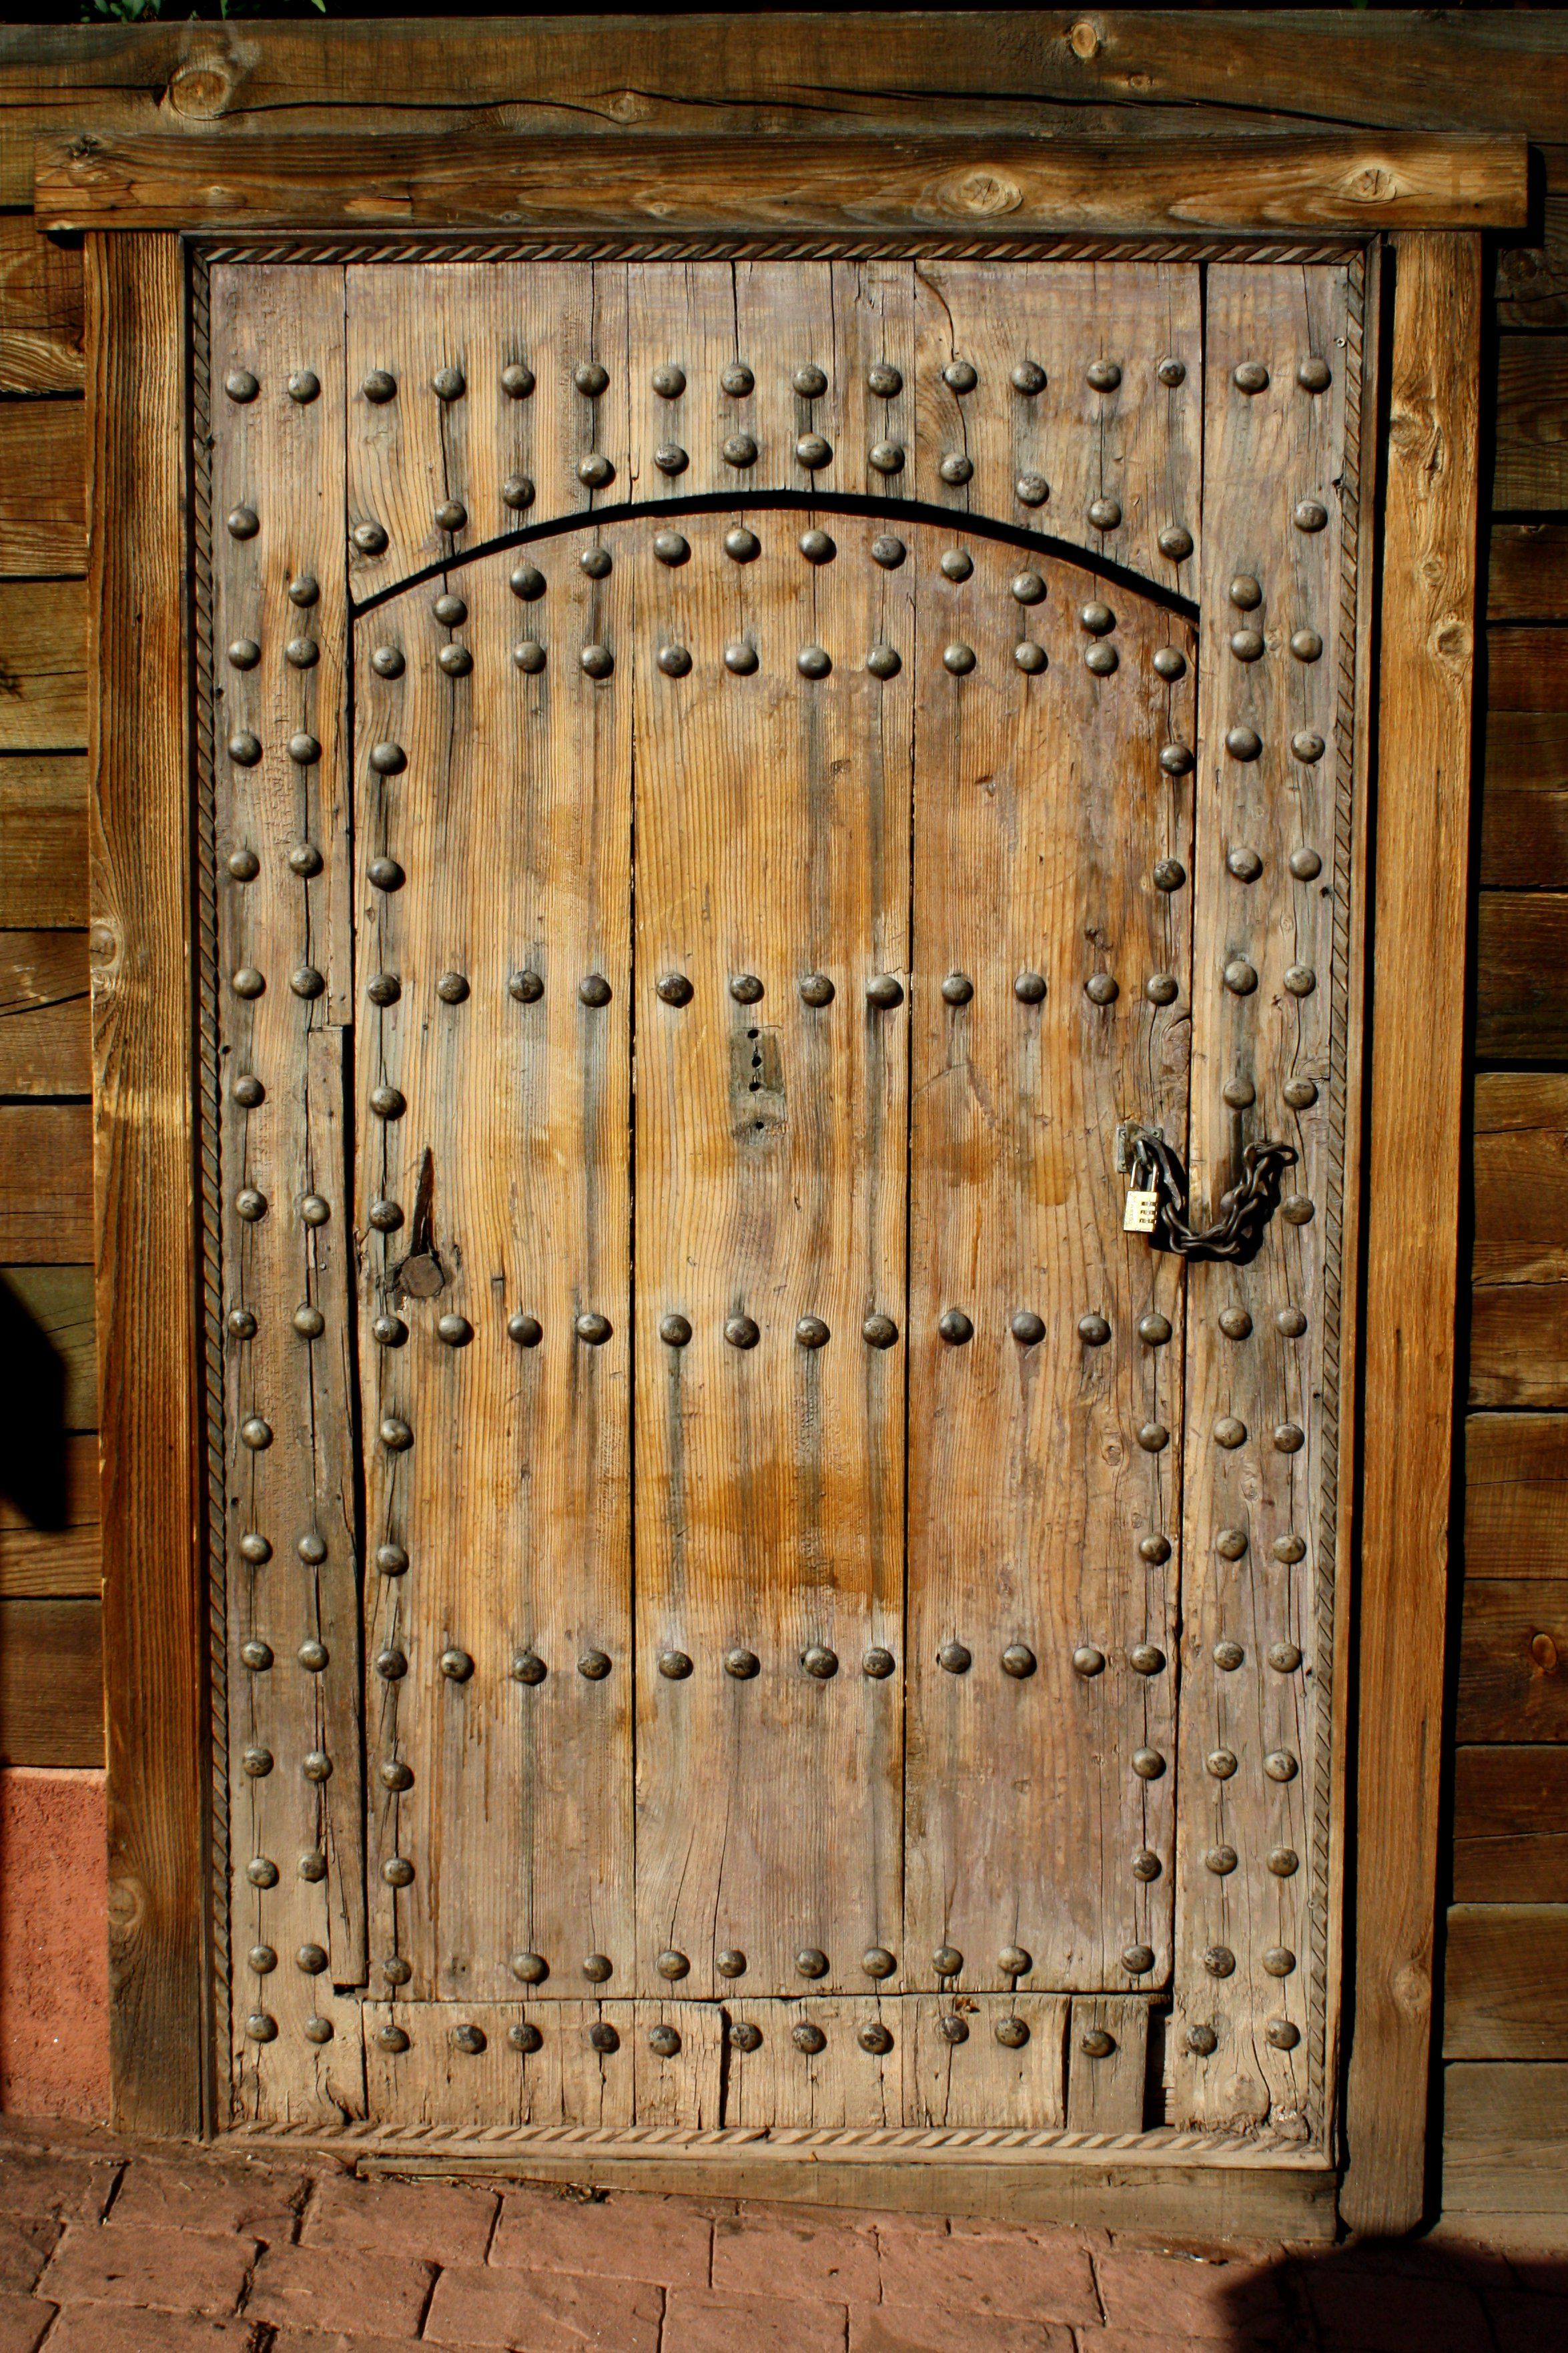 Old World Rustic Wooden Door with Bolts and Padlock